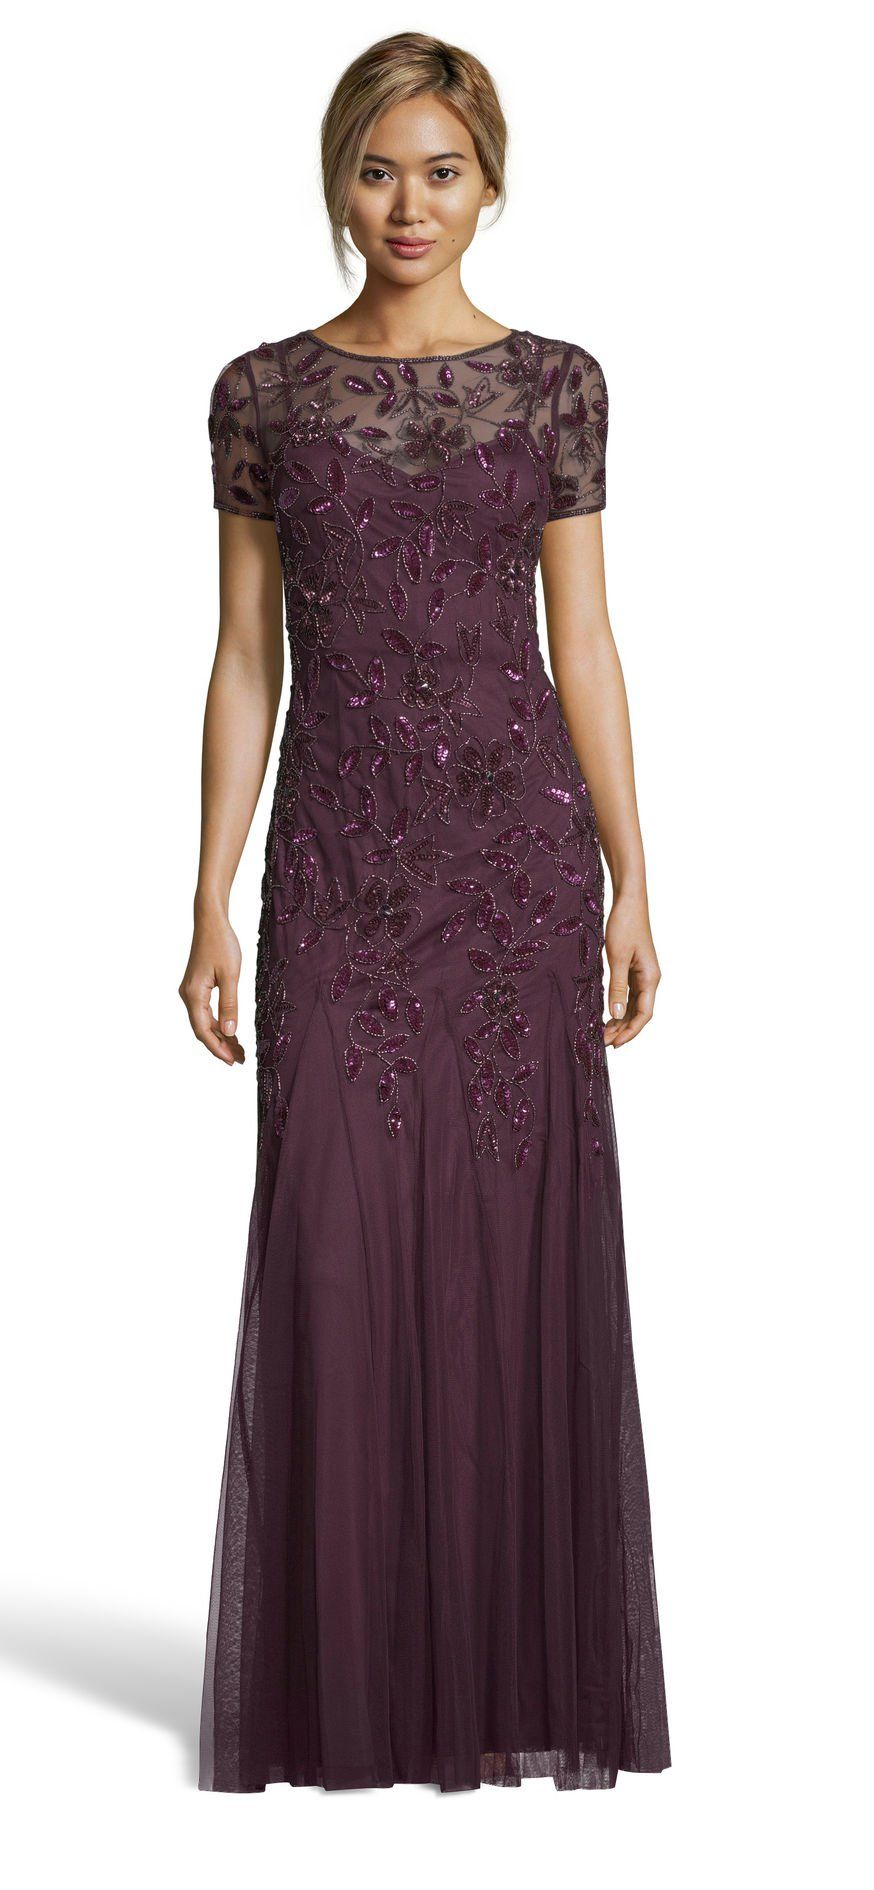 Adrianna Papell Floral Beaded Godet Gown With Sheer Short Sleeves Mother Of Groom Dresses Mother Of The Bride Gown Bride Dress